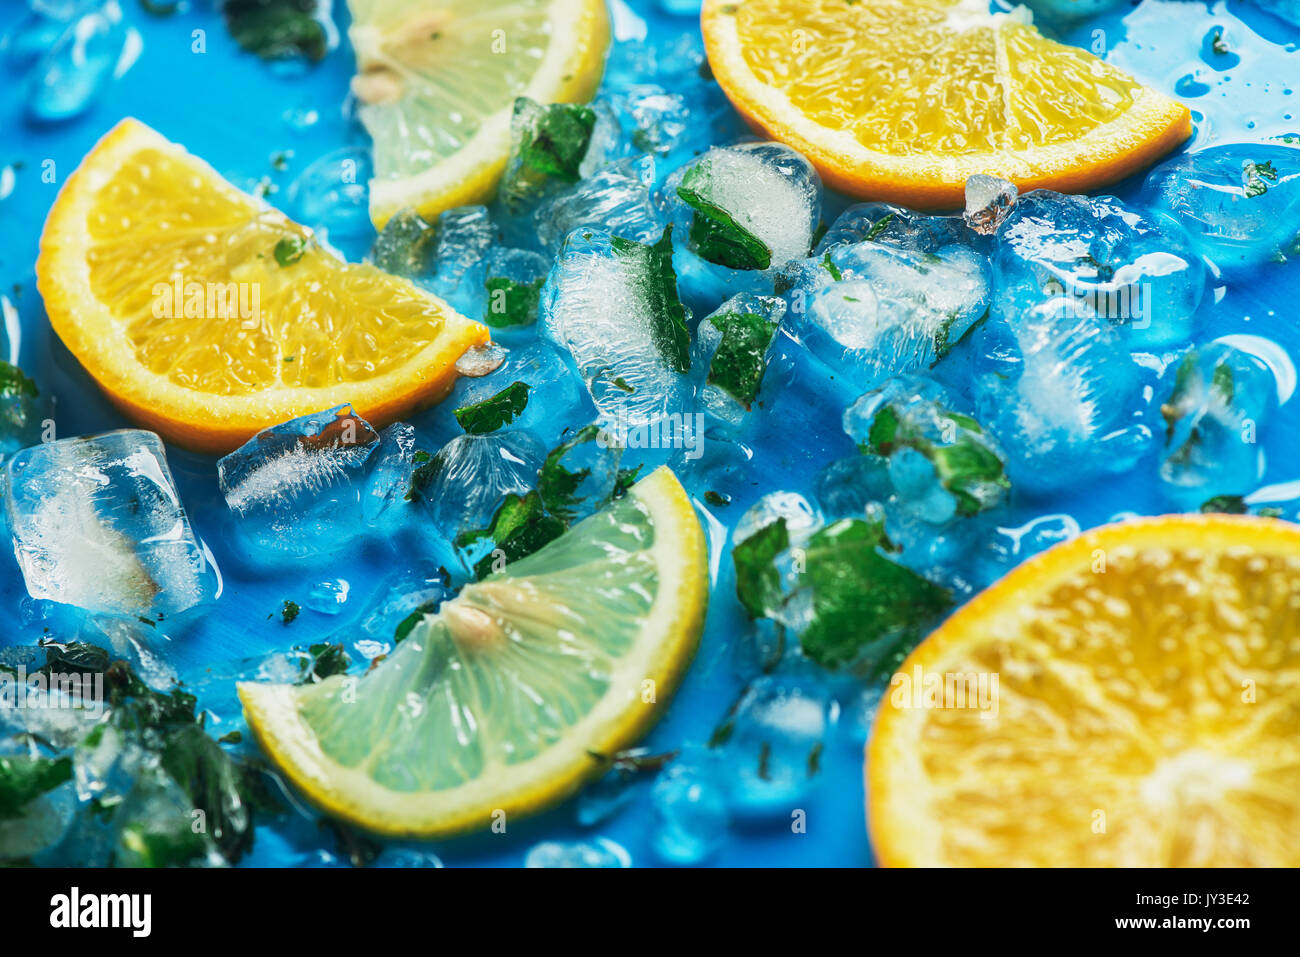 Close-up of sliced oranges et citrons sur un fond bleu avec des cubes de glace Photo Stock